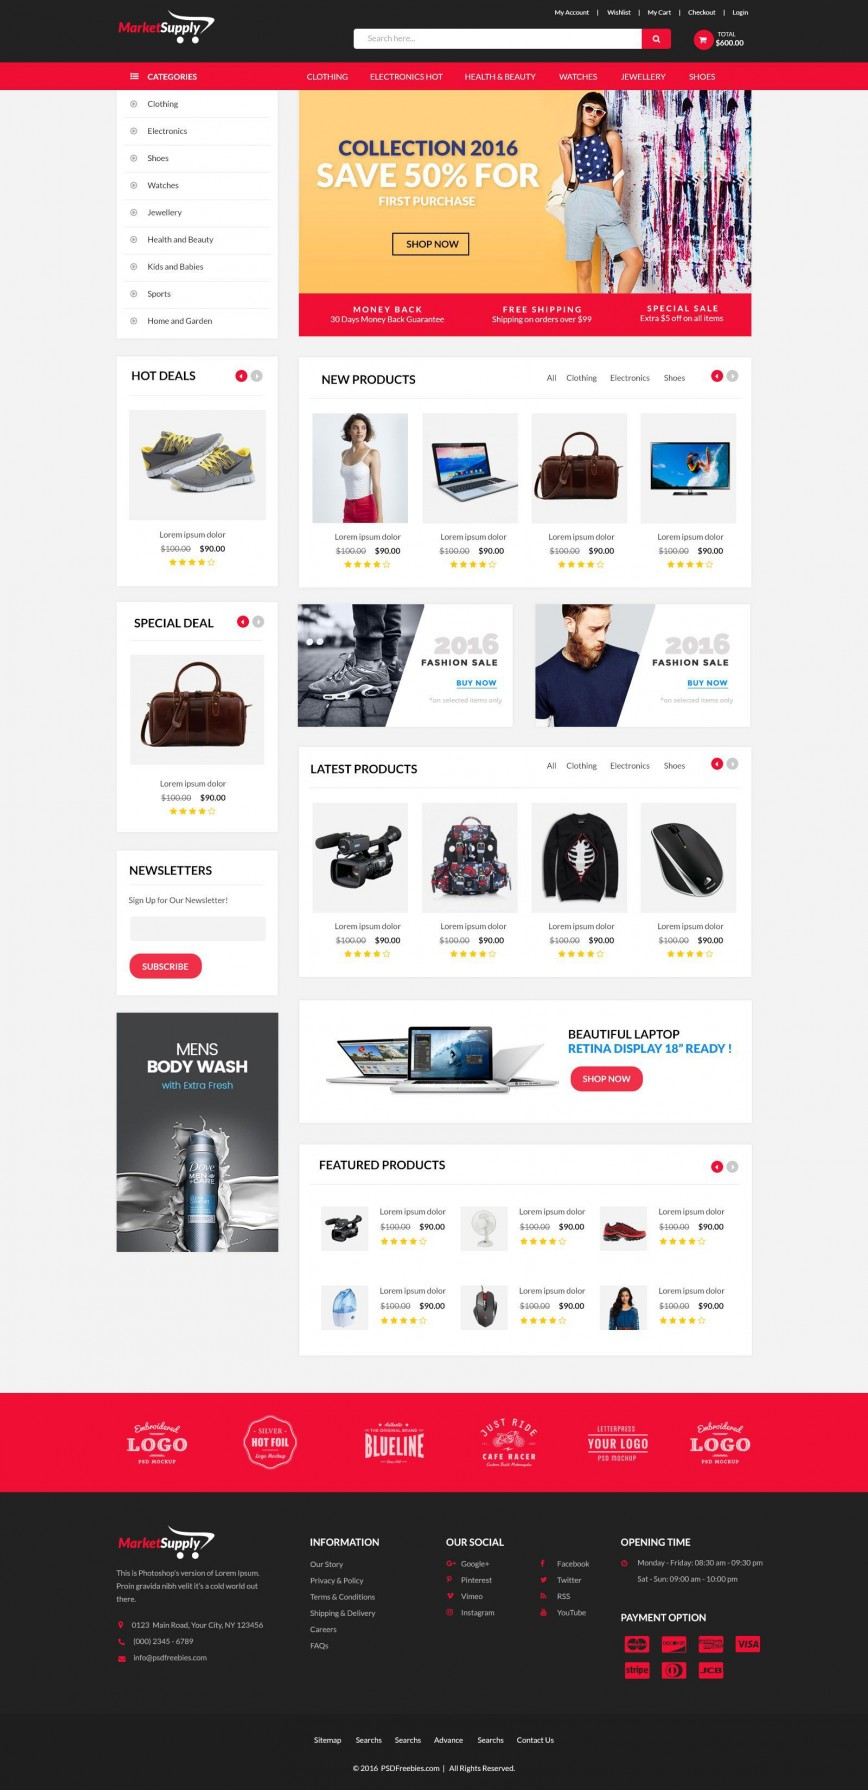 000 Shocking Free Php Website Template Idea  Download And Cs Full Theme868